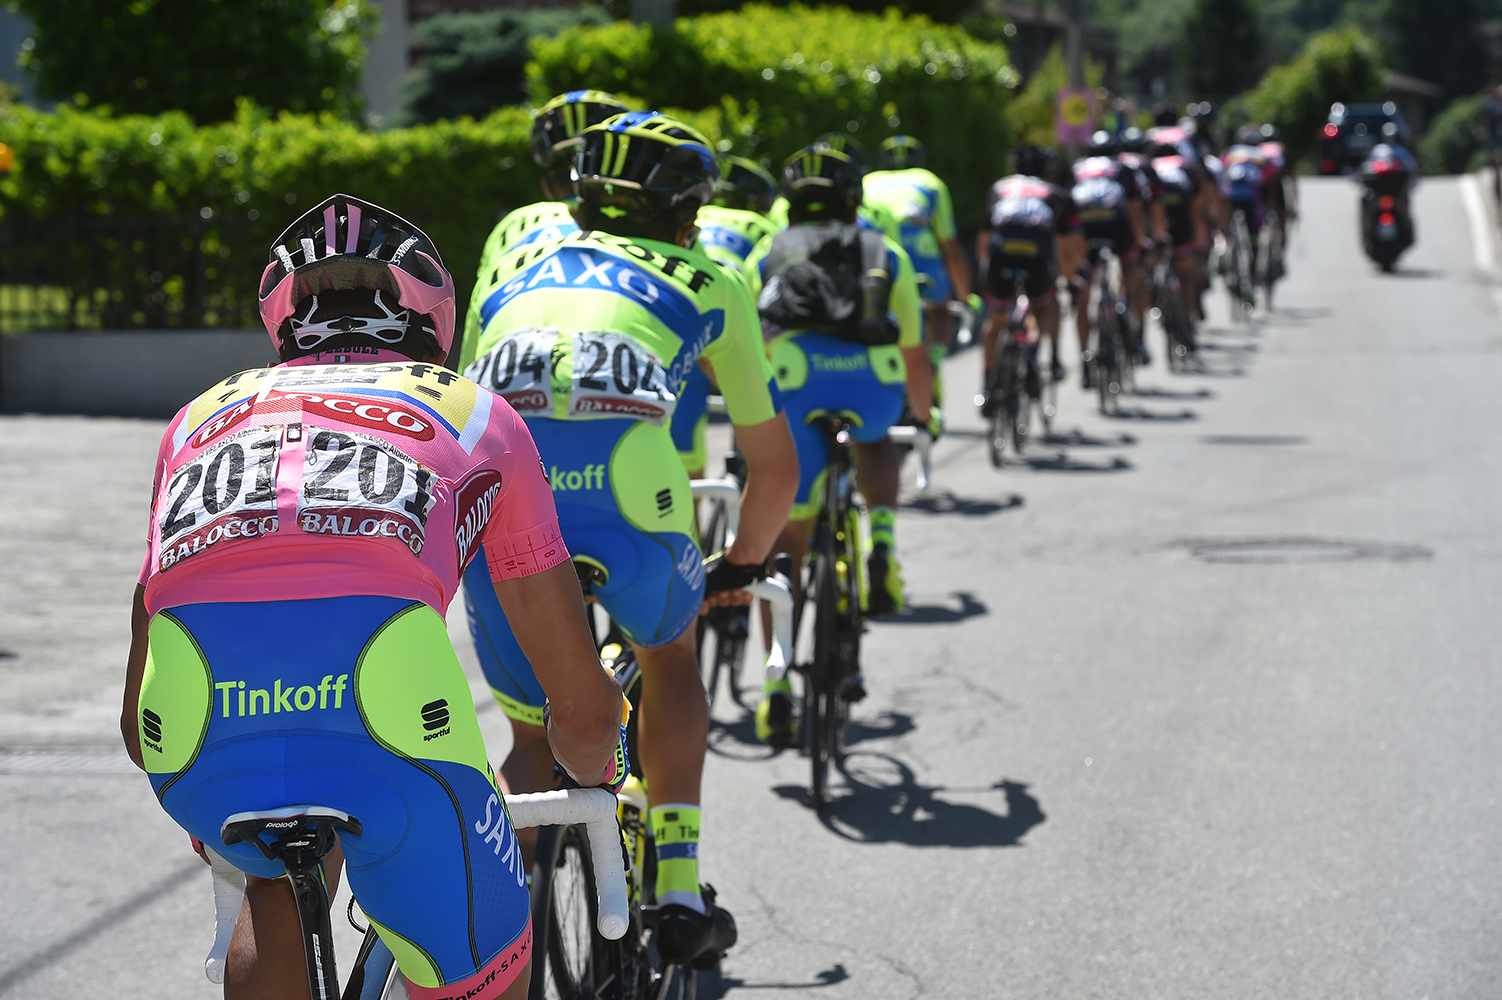 Tour d'Italie : Giro 2015 - 18ème étape en direct live streaming